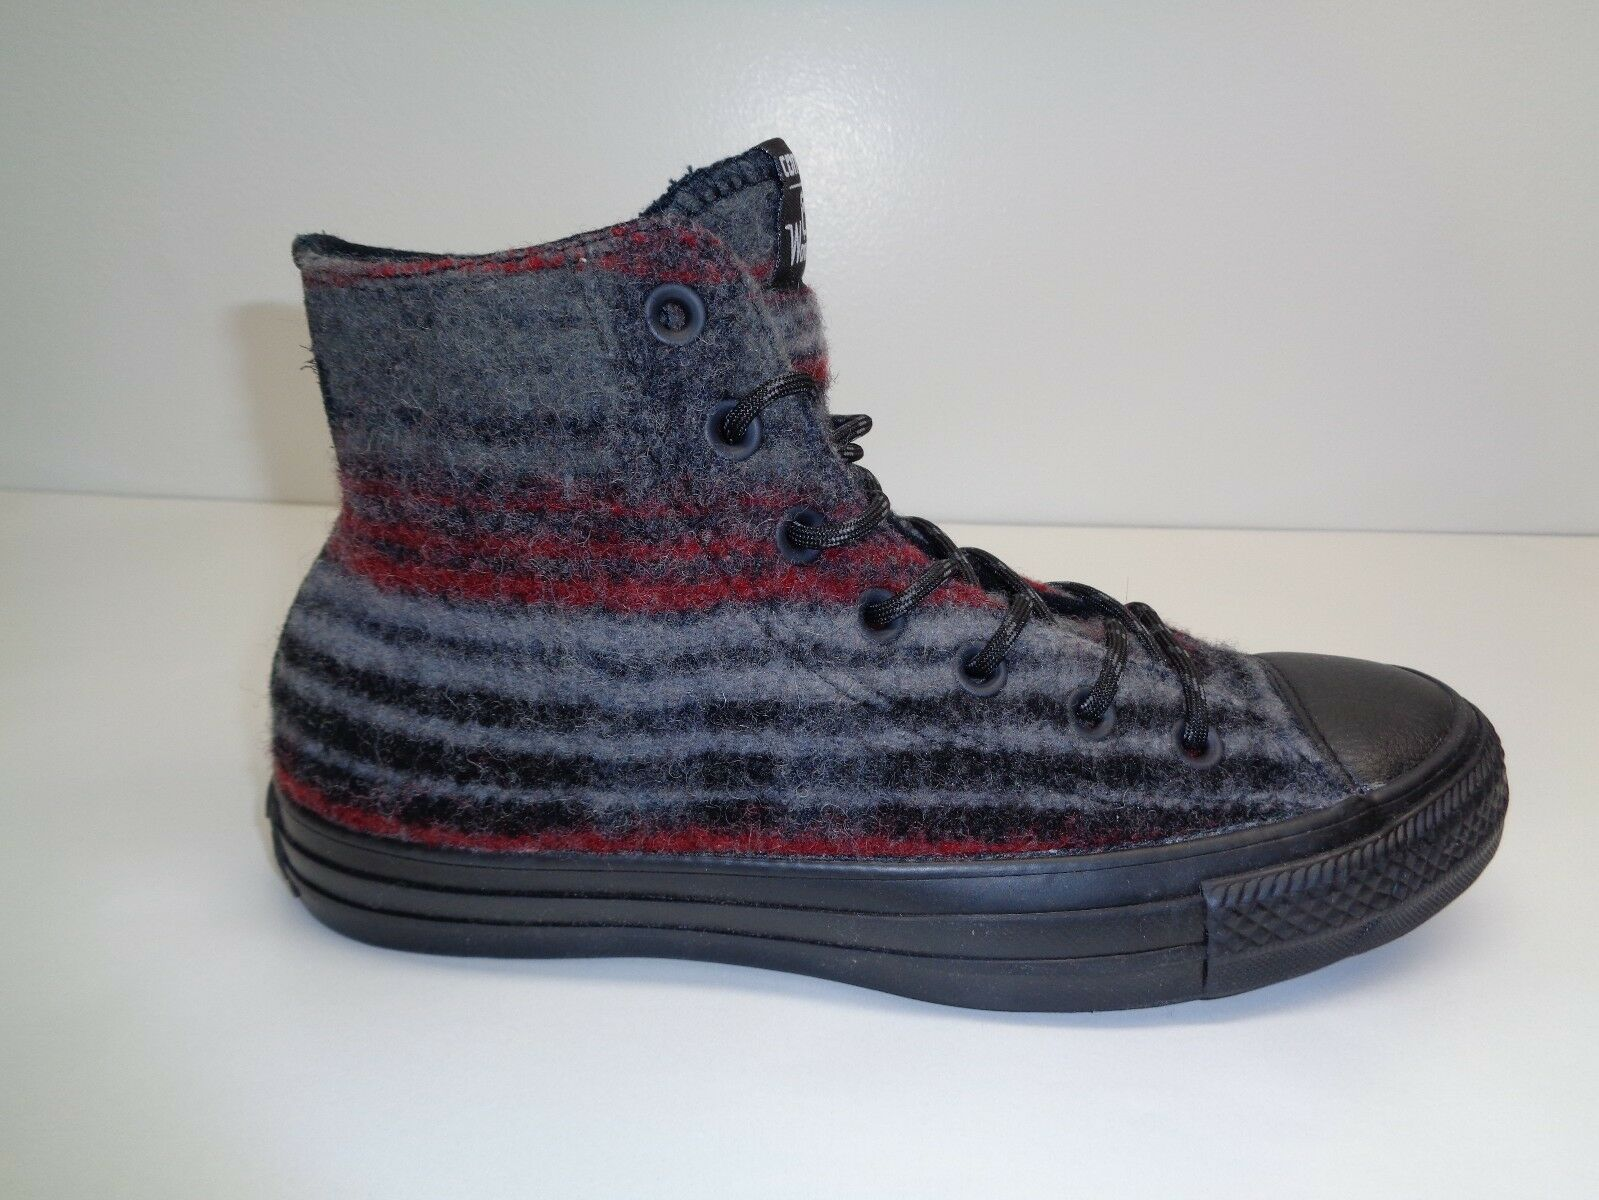 Converse Size 9 STREET HIKER HI WOOLRICH Dolphin Wool Sneakers New Unisex Shoes